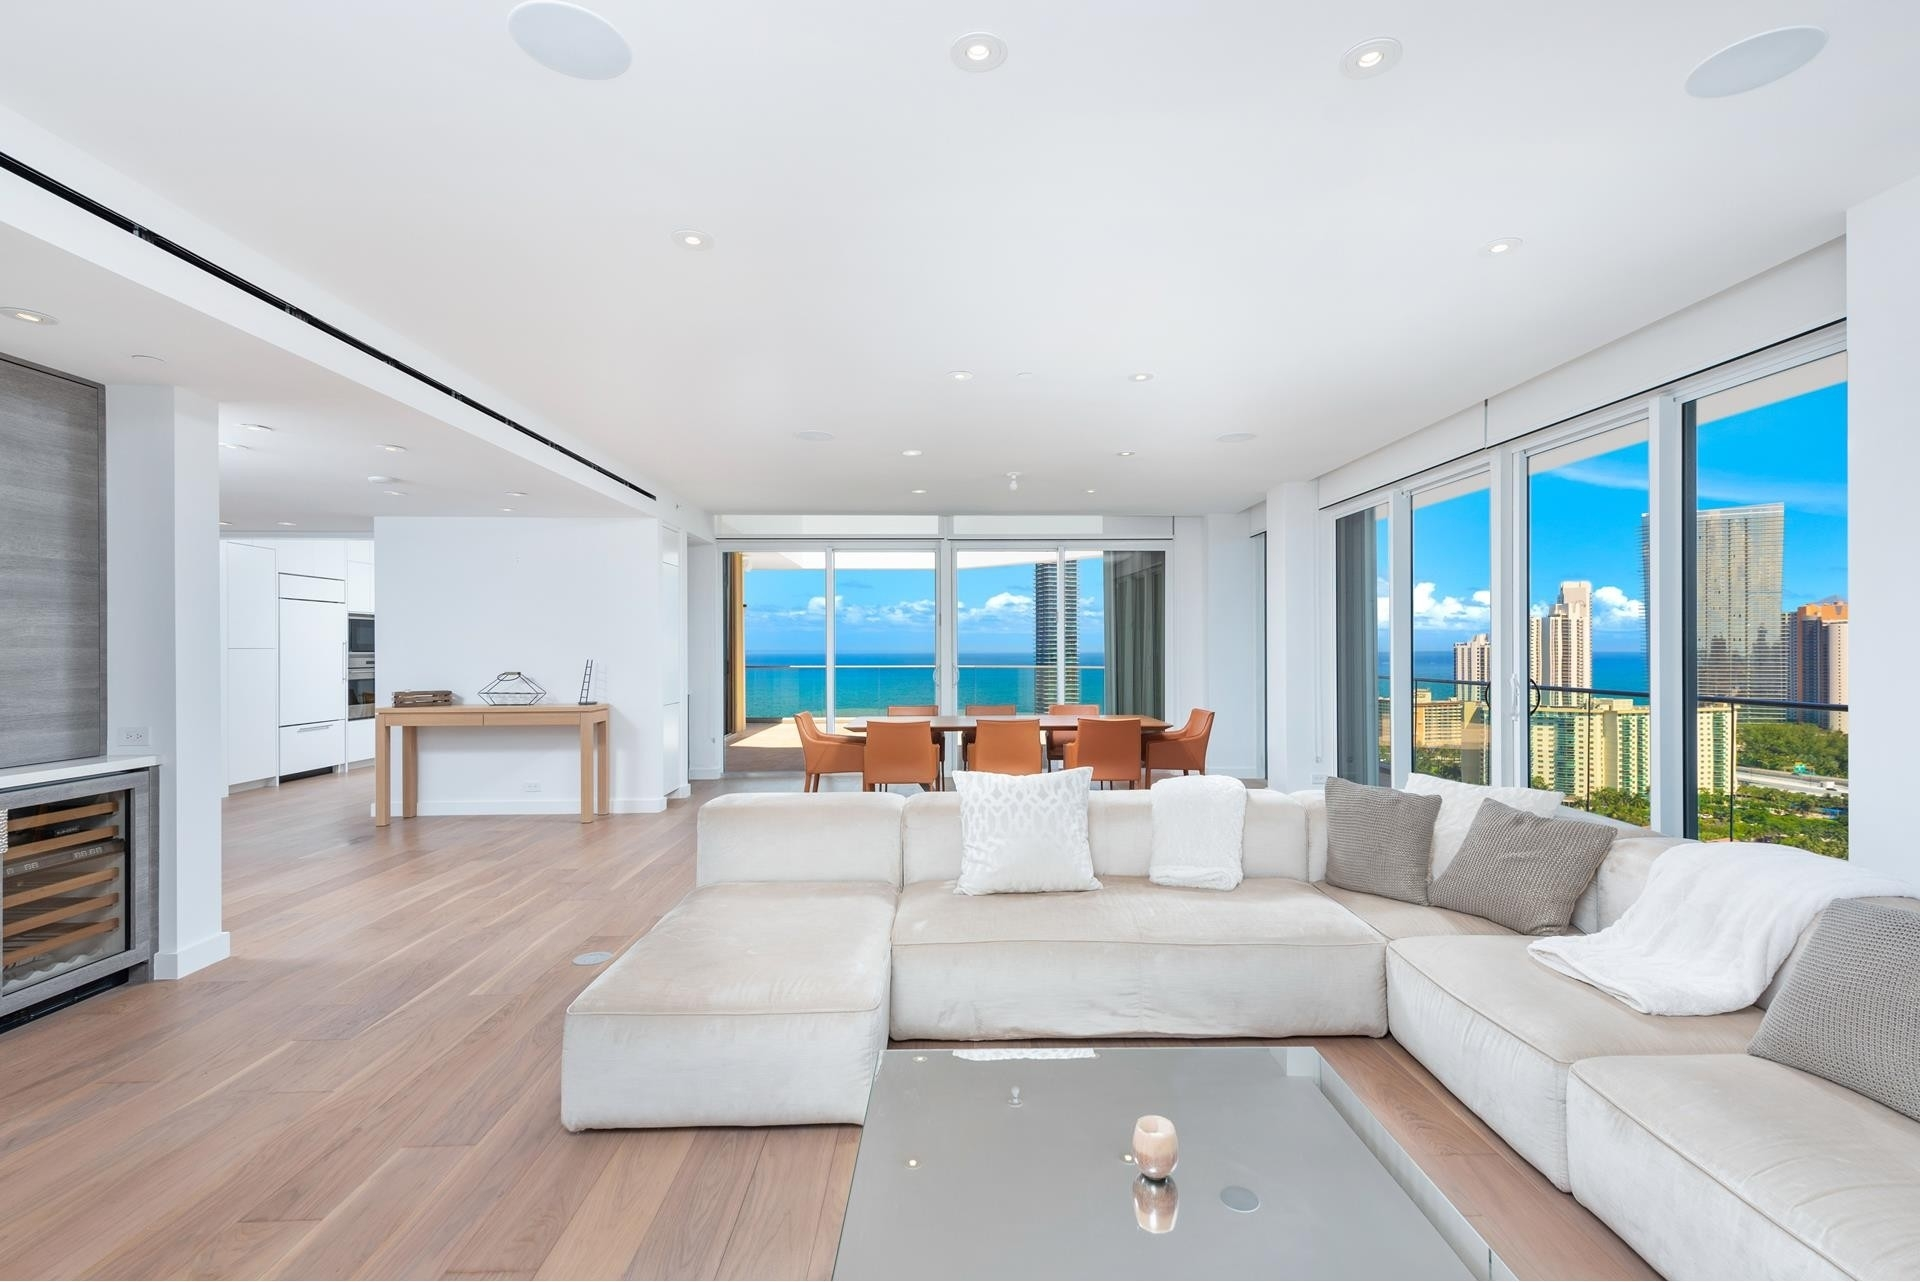 Condominium pour l Vente à 19707 Turnberry Way , TS-3 Biscayne Yacht and Country Club, Aventura, FL 33180